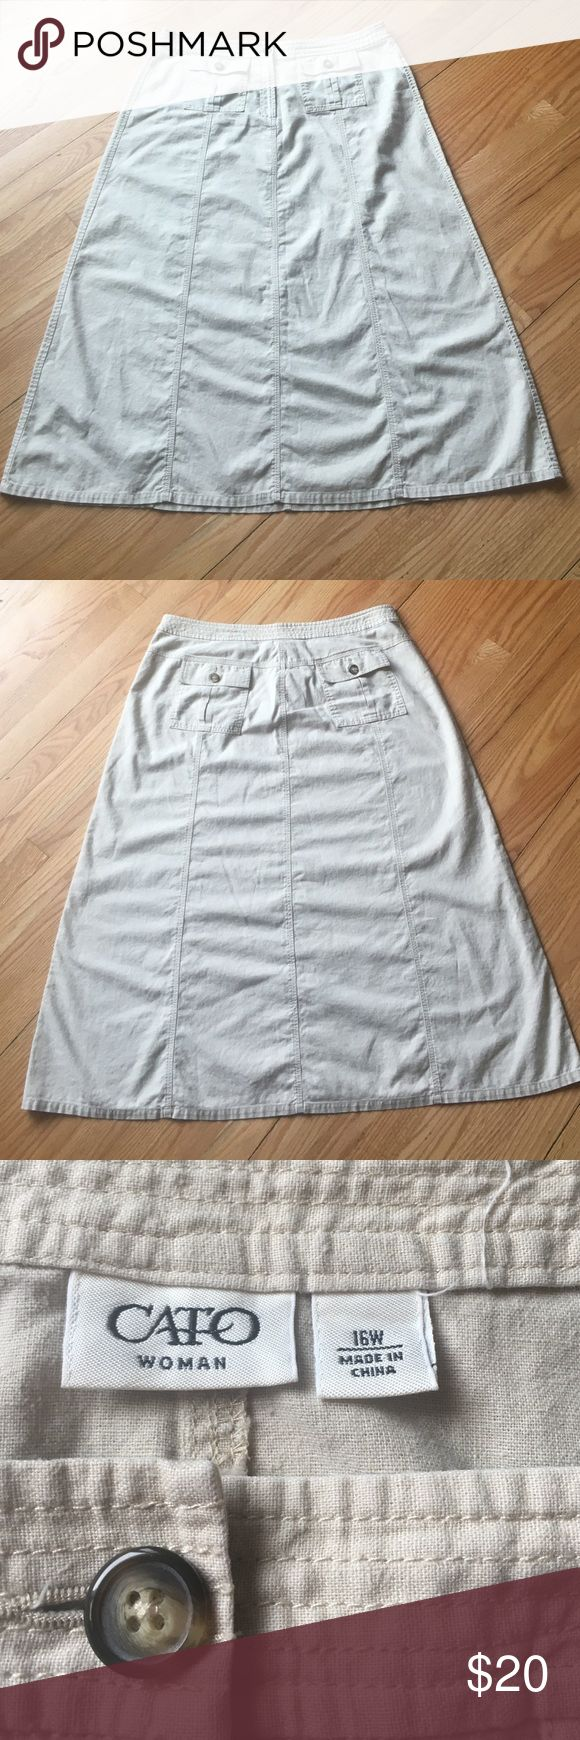 Cato long khaki skirt size 16W Beautiful khaki skirt. Button up pockets. No split. No flaws, just doesn't fit me anymore. Figure flattering A-line cut. Please comment with any questions! I have other skirts also and love to bundle! 📦💕 Cato Skirts A-Line or Full